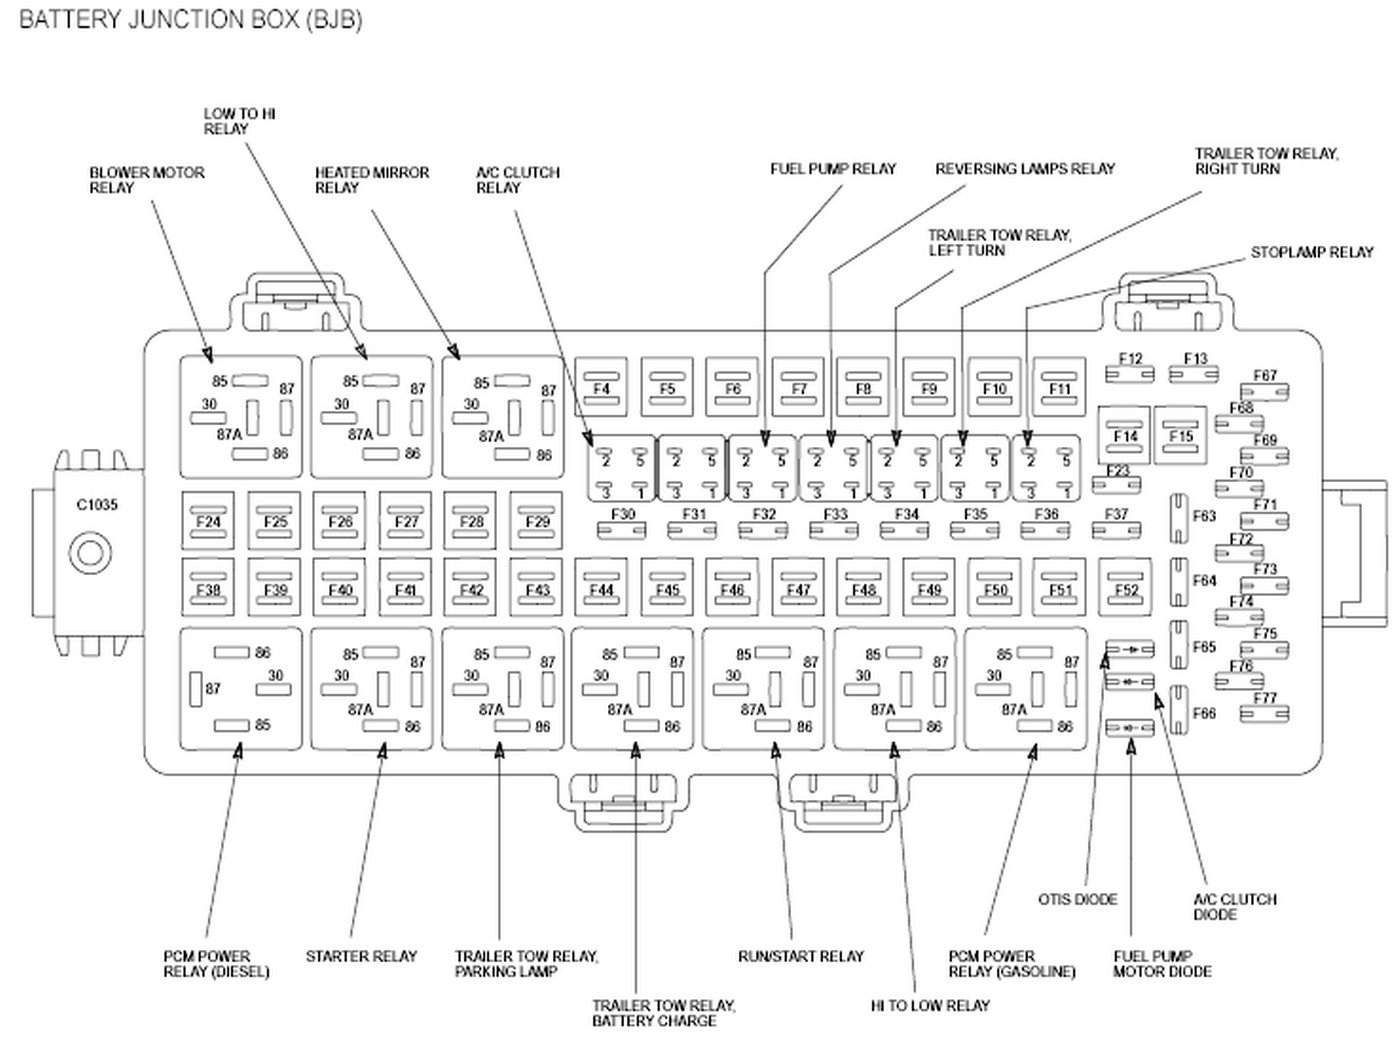 2008 f250 fuse diagram wiring diagram will be a thing u2022 rh  exploreandmore co uk 2008 ford f250 5.4 fuse box diagram fuse box diagram  2008 ford f250